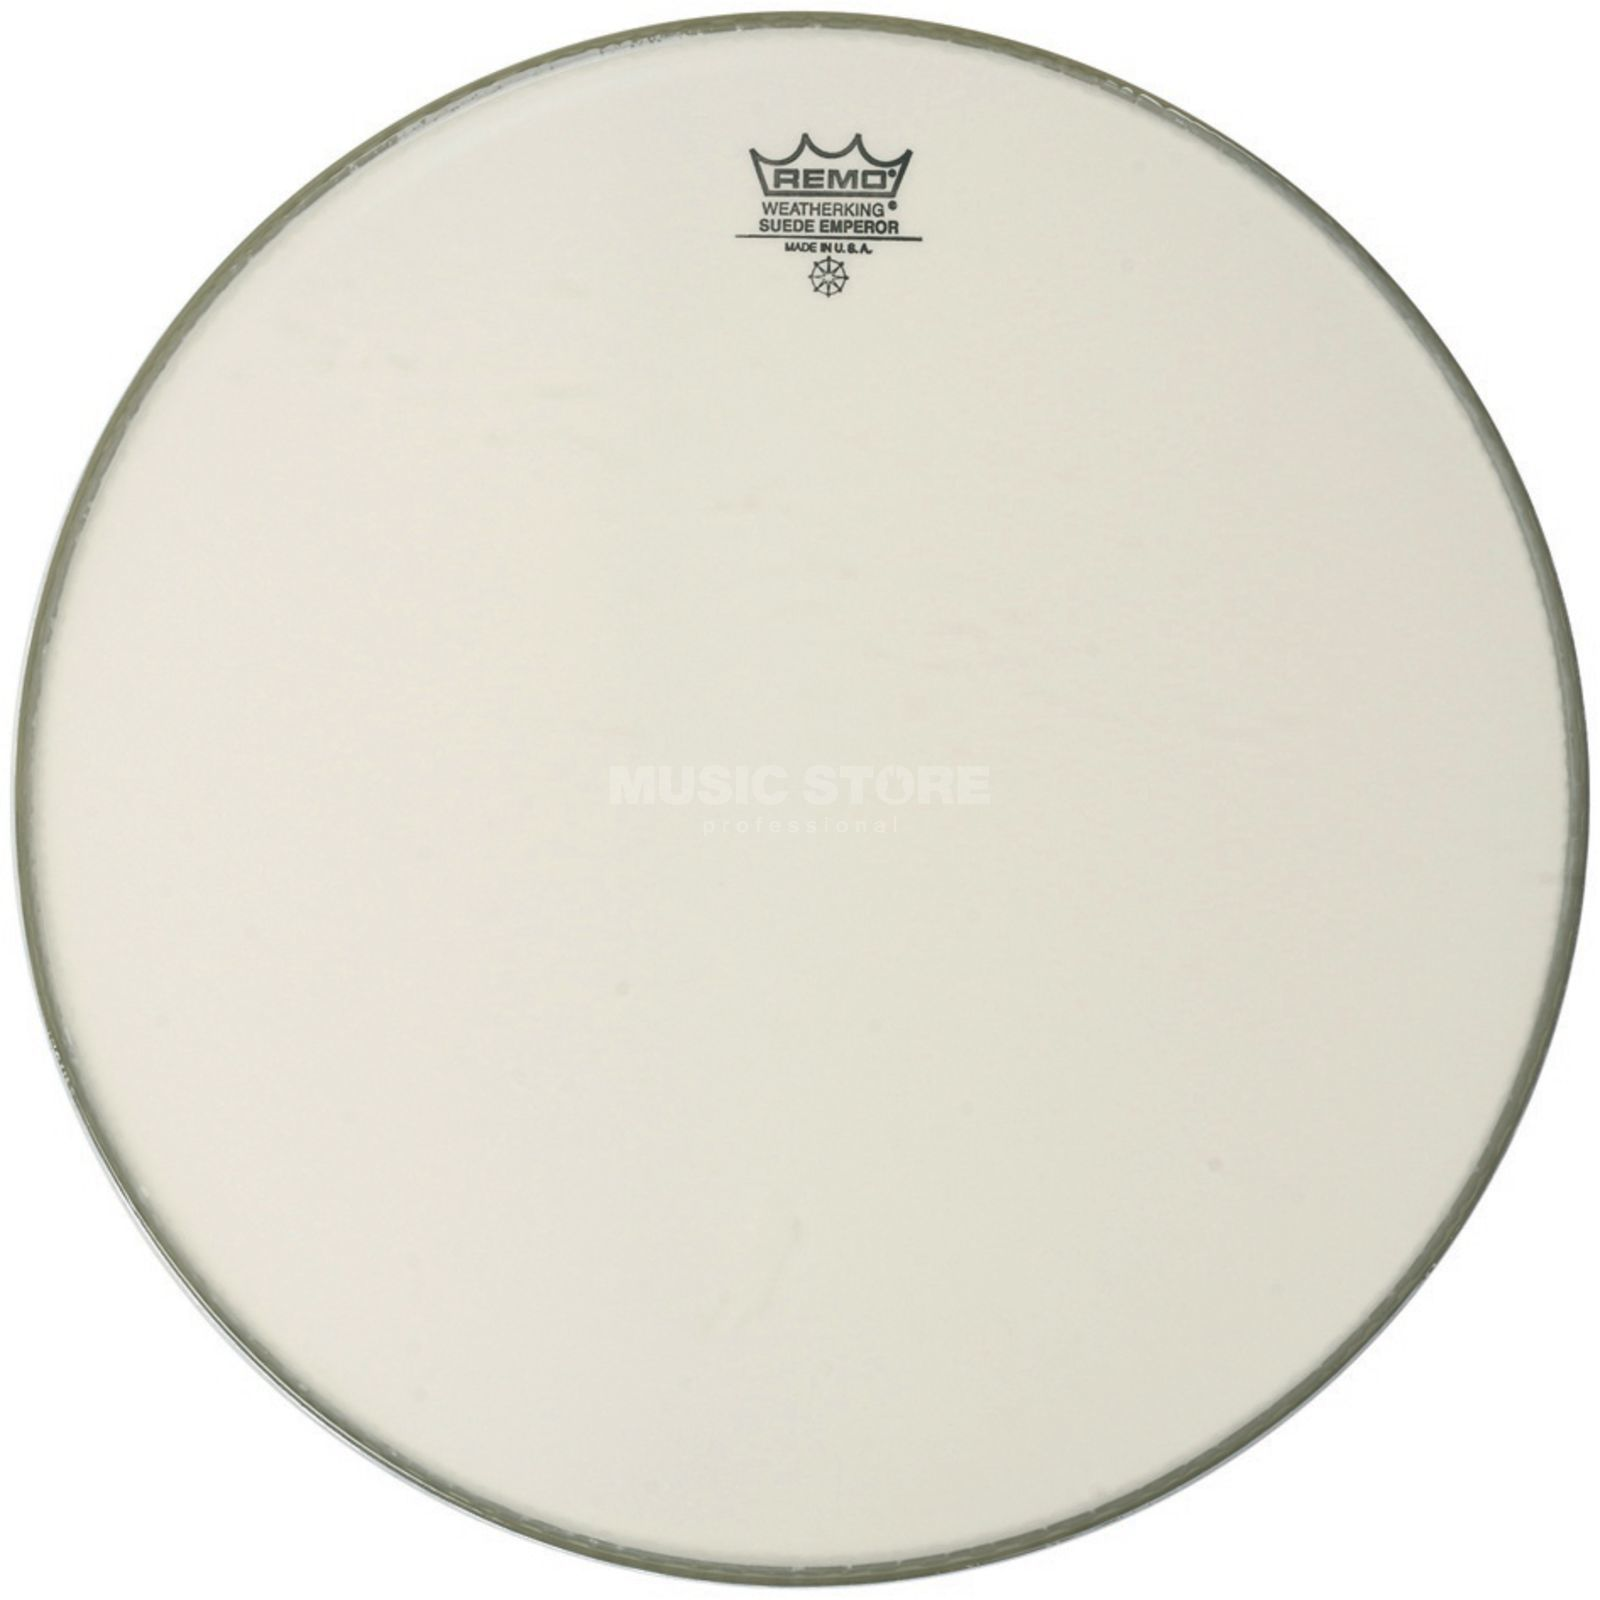 "Remo Emperor Suede 18"", BassDrum Batter/Reso Product Image"